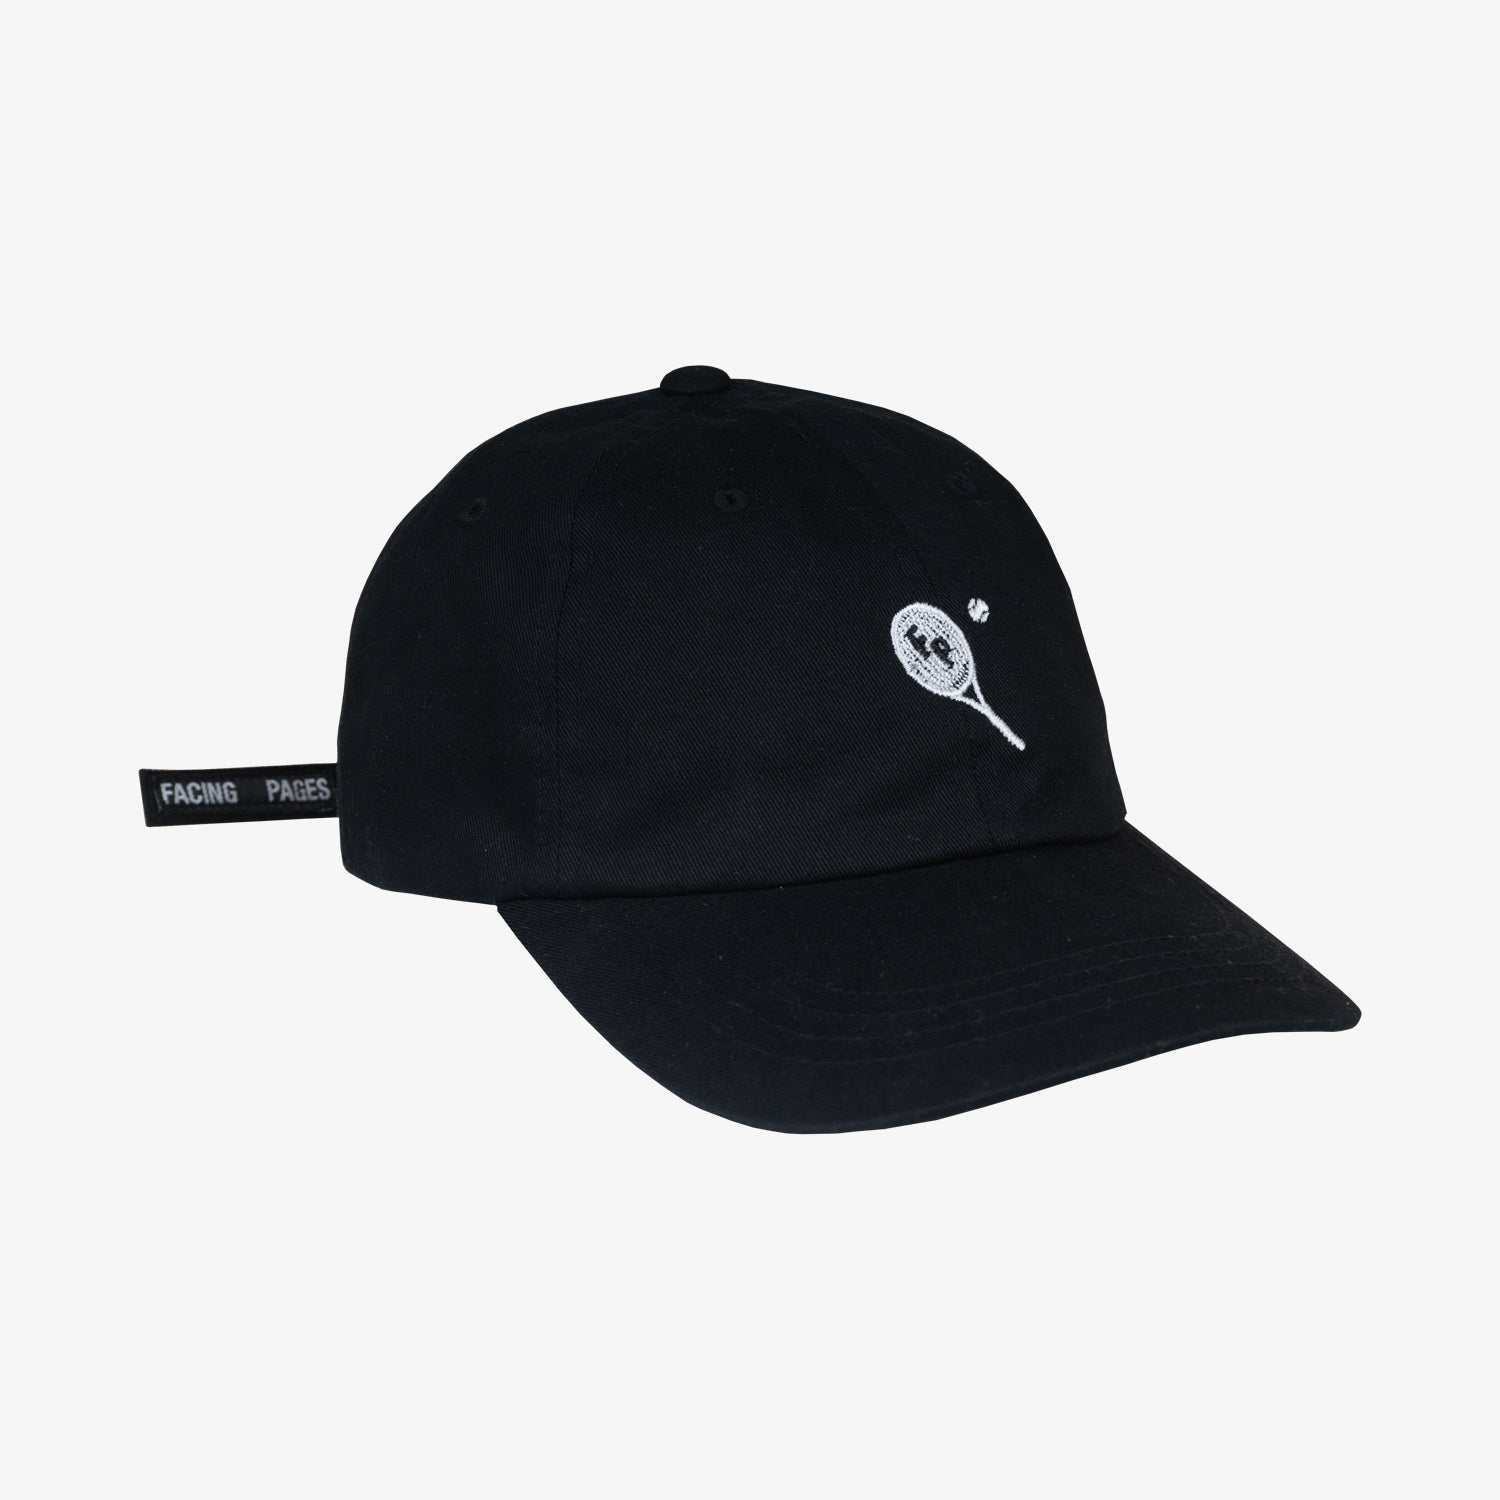 Image of FP TENNIS CLUB HAT, BLACK